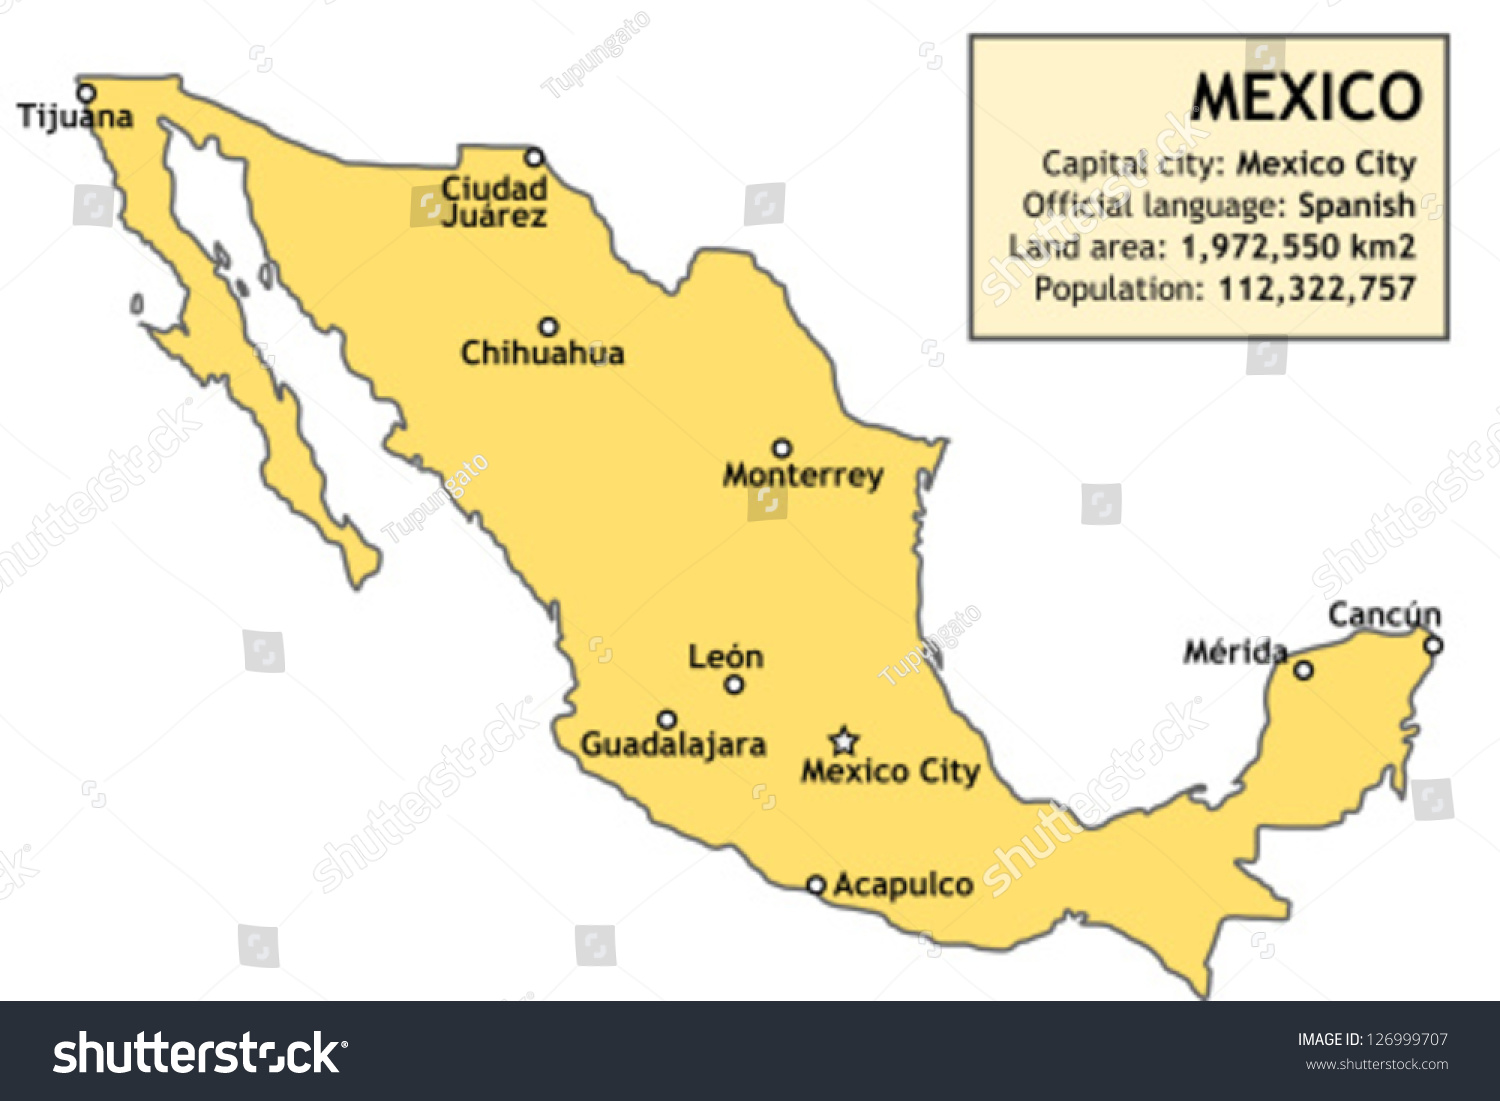 Outline Map Of Mexico With Major Cities And A Basic